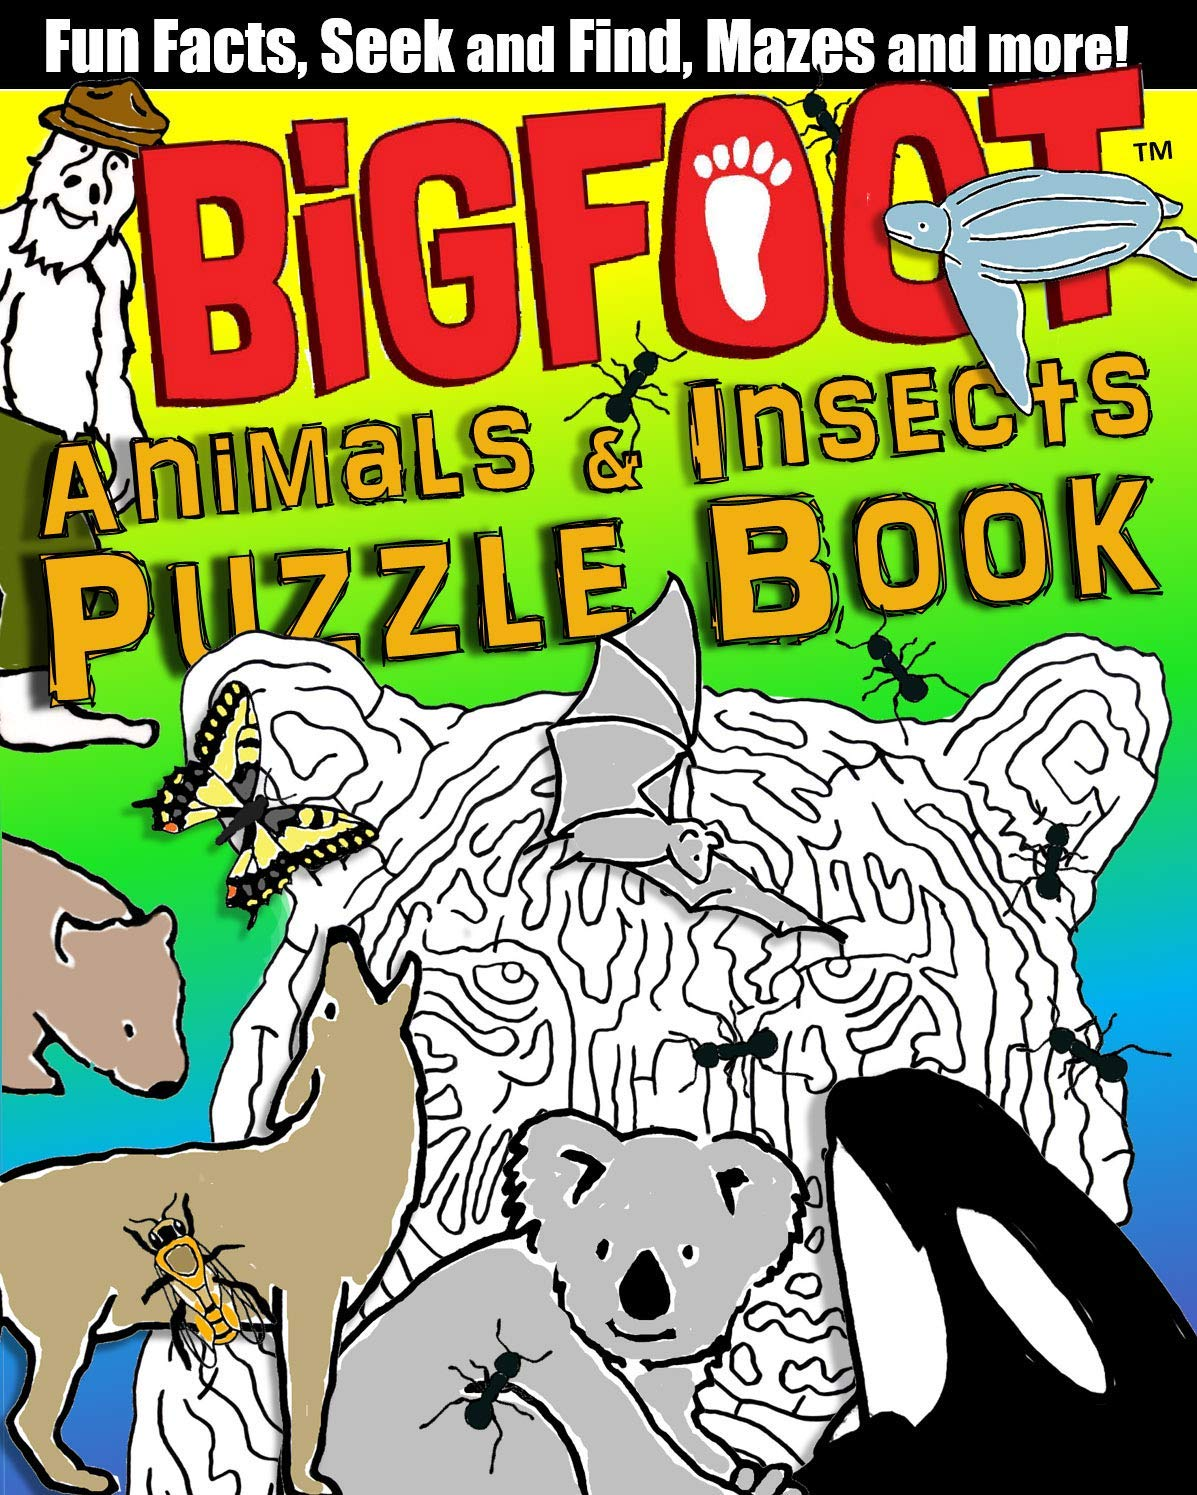 Bigfoot Animals Insects Puzzle Book Fun Facts Seek And Find Mazes And More Happy Fox Books Over 100 Puzzles Word Games Coloring Pages Dot To Dots Crosswords More Plus 80 Free Stickers